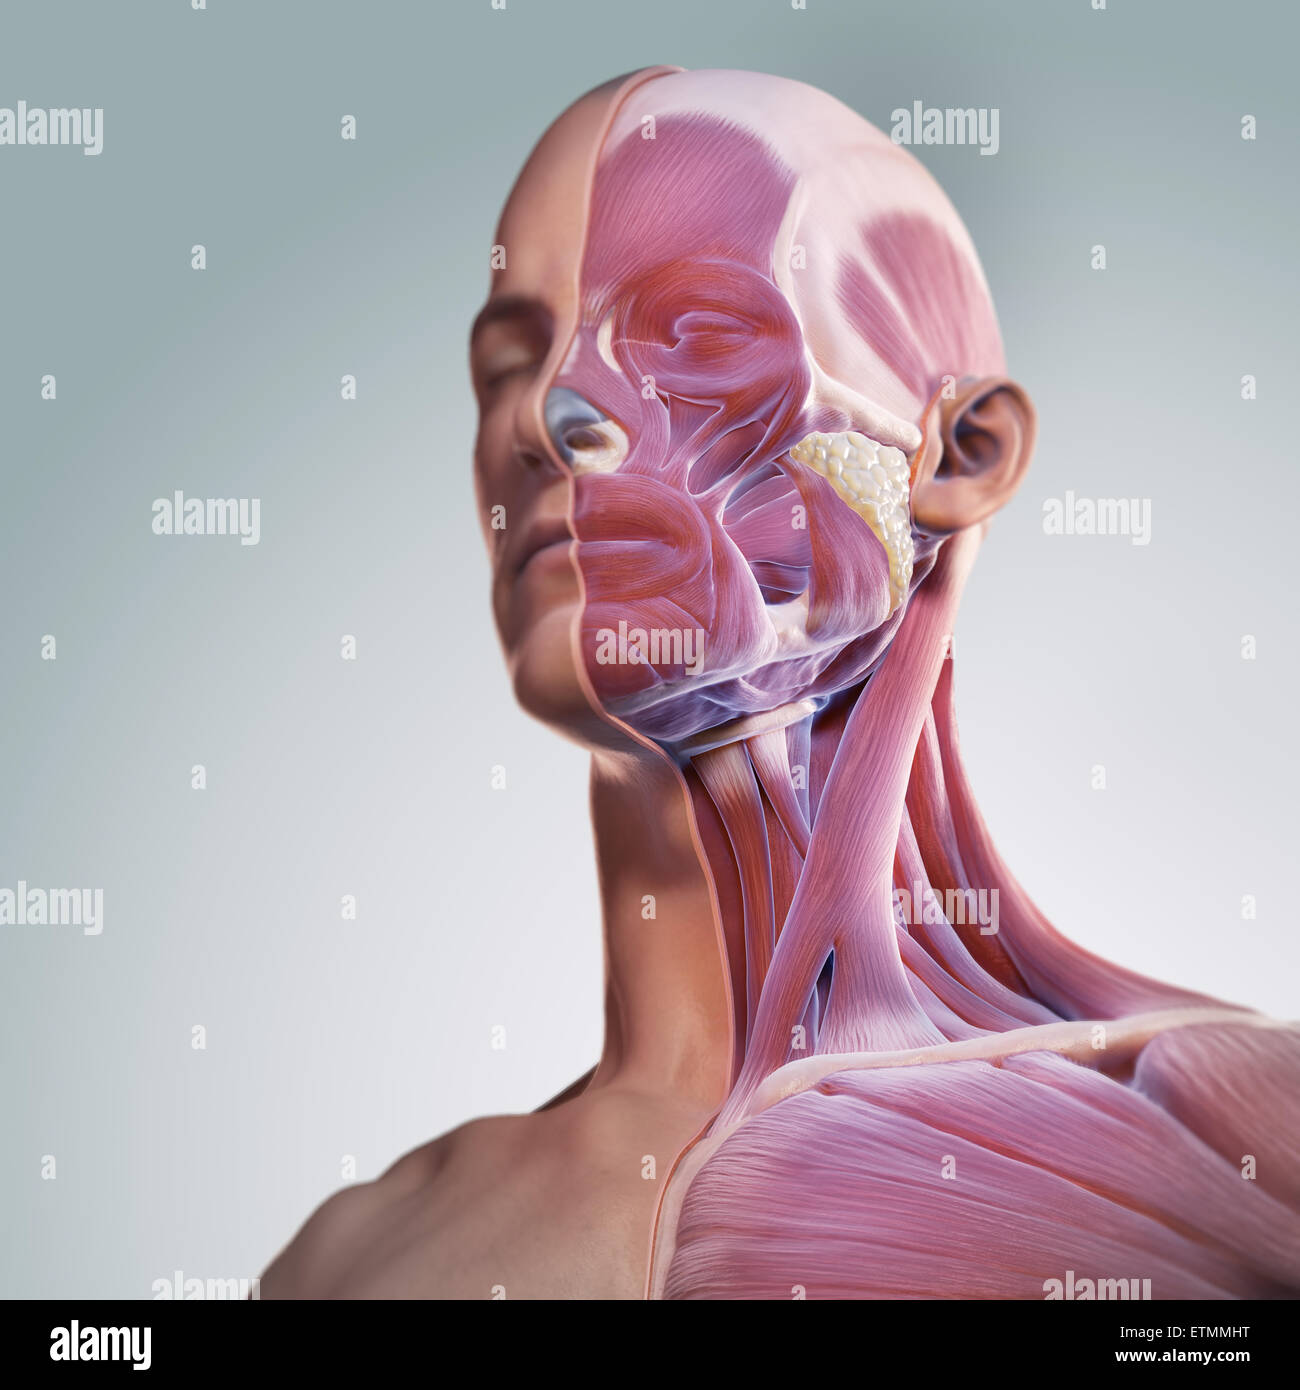 Conceptual image of the face with muscles exposed on one side. Stock Photo